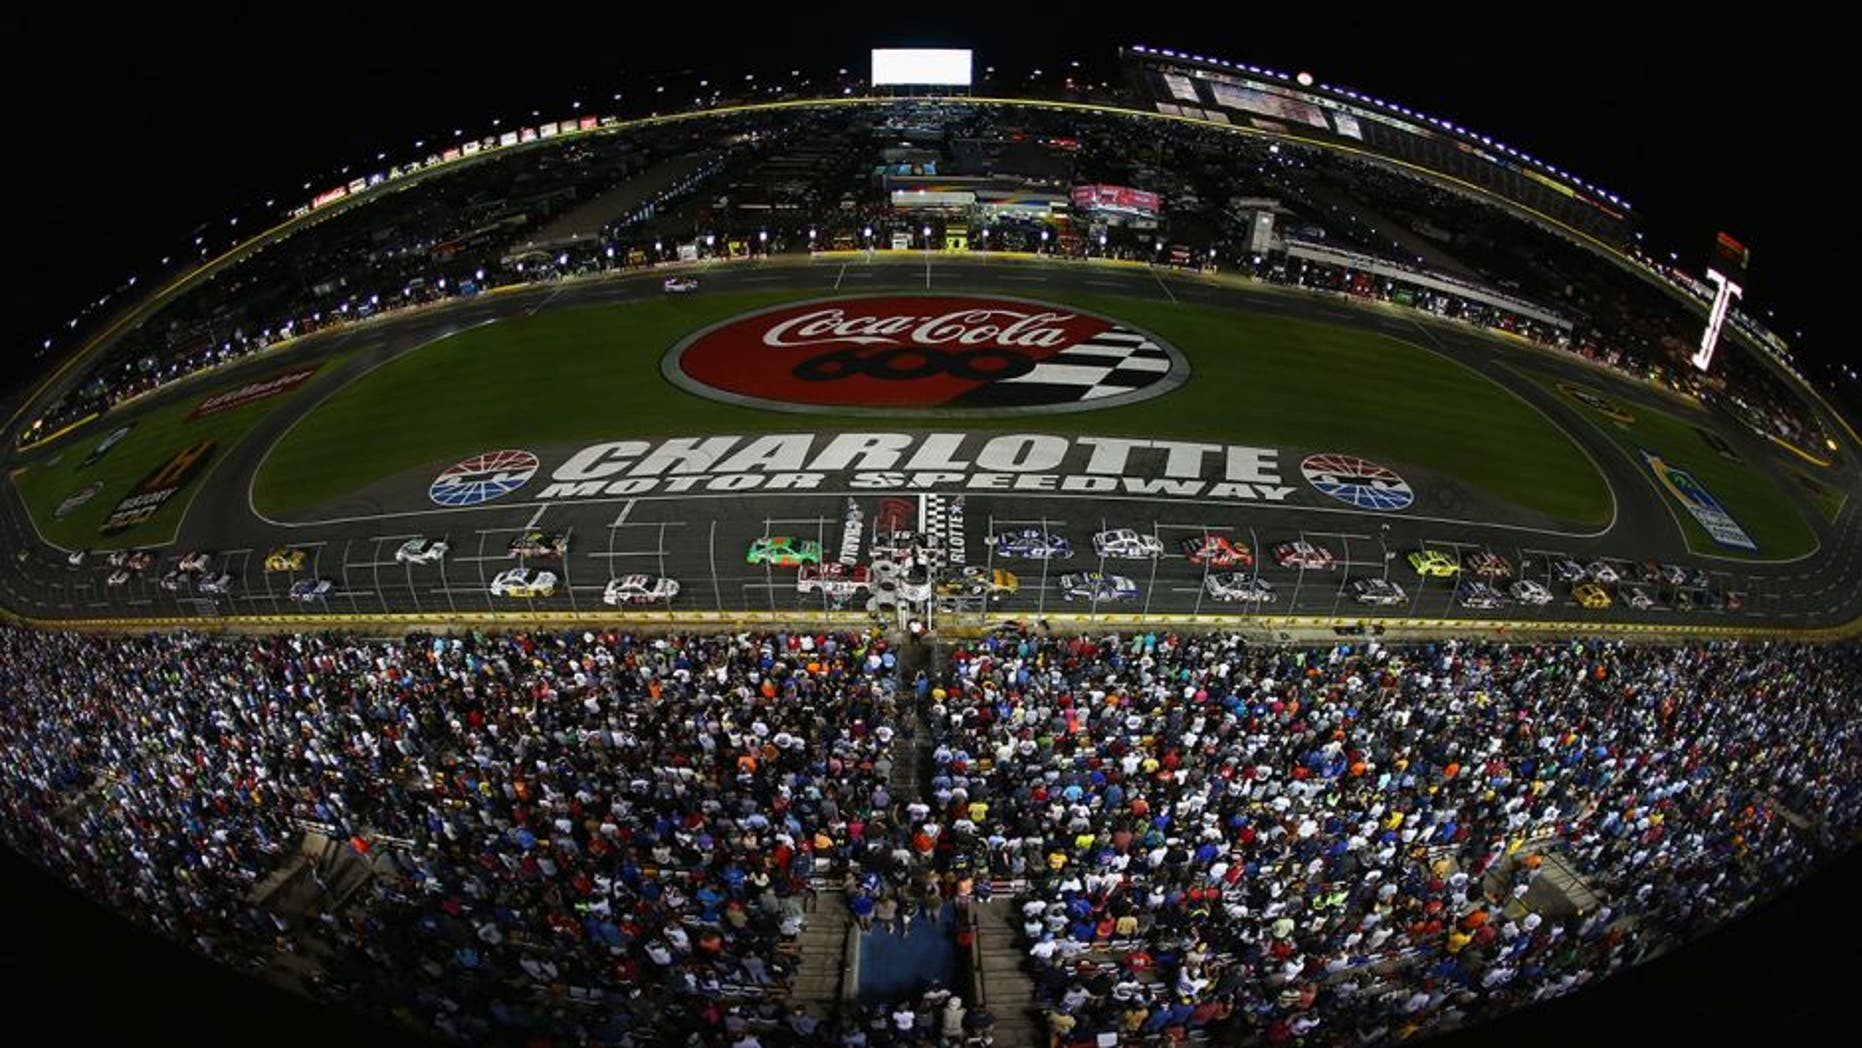 CONCORD, NC - MAY 26: The field restart during the NASCAR Sprint Cup Series Coca-Cola 600 at Charlotte Motor Speedway on May 26, 2013 in Concord, North Carolina. (Photo by Streeter Lecka/Getty Images)